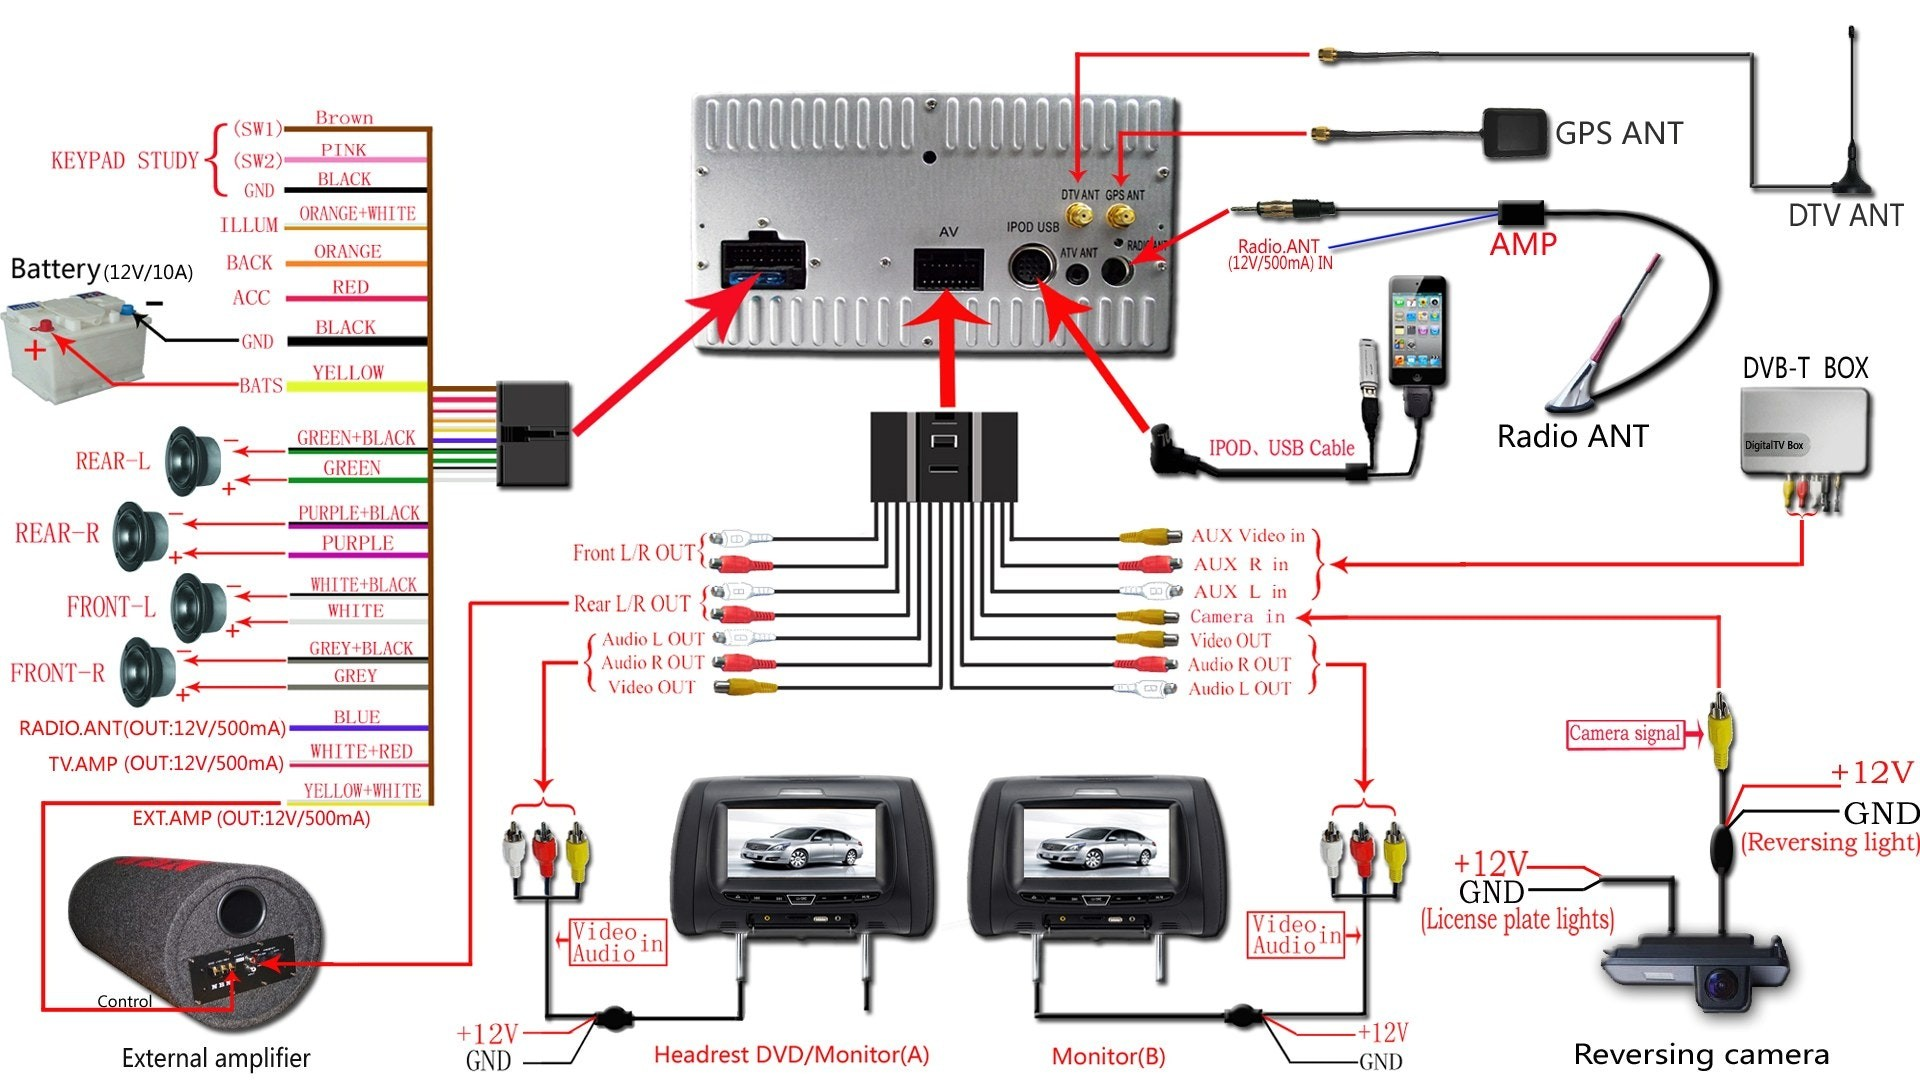 Wiring Diagrams for Pioneer Car Stereos Car Stereo Wiring Diagram Strong On Installation with sony Radio Of Wiring Diagrams for Pioneer Car Stereos